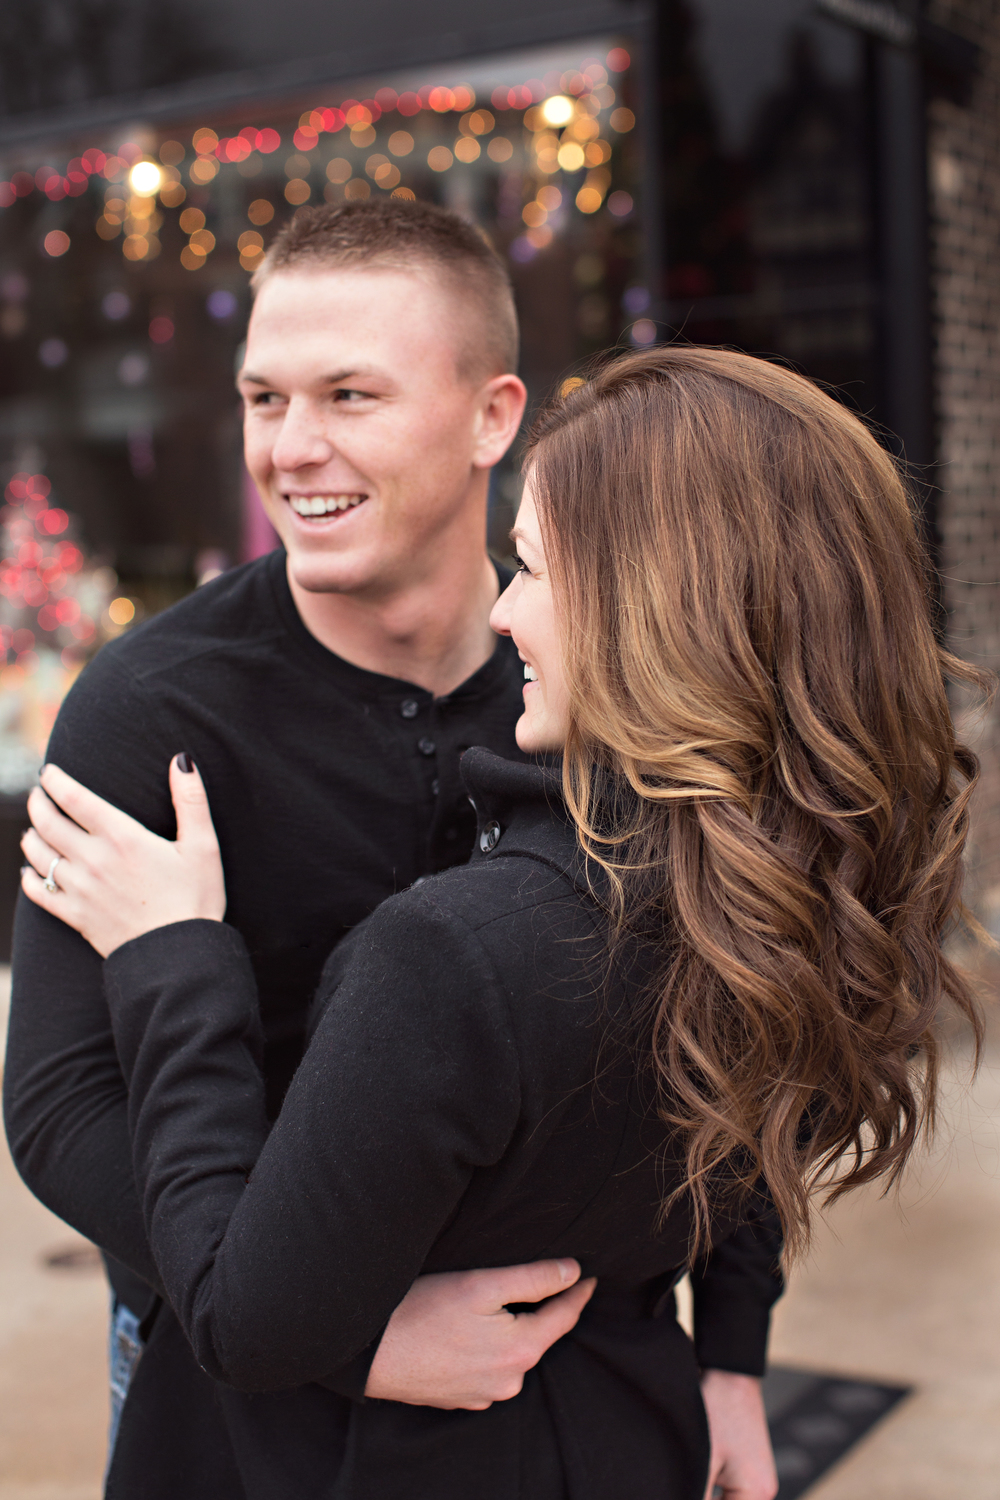 St-Louis-Engagement-Wedding-Photographer-AshlePhoto_0007.JPG